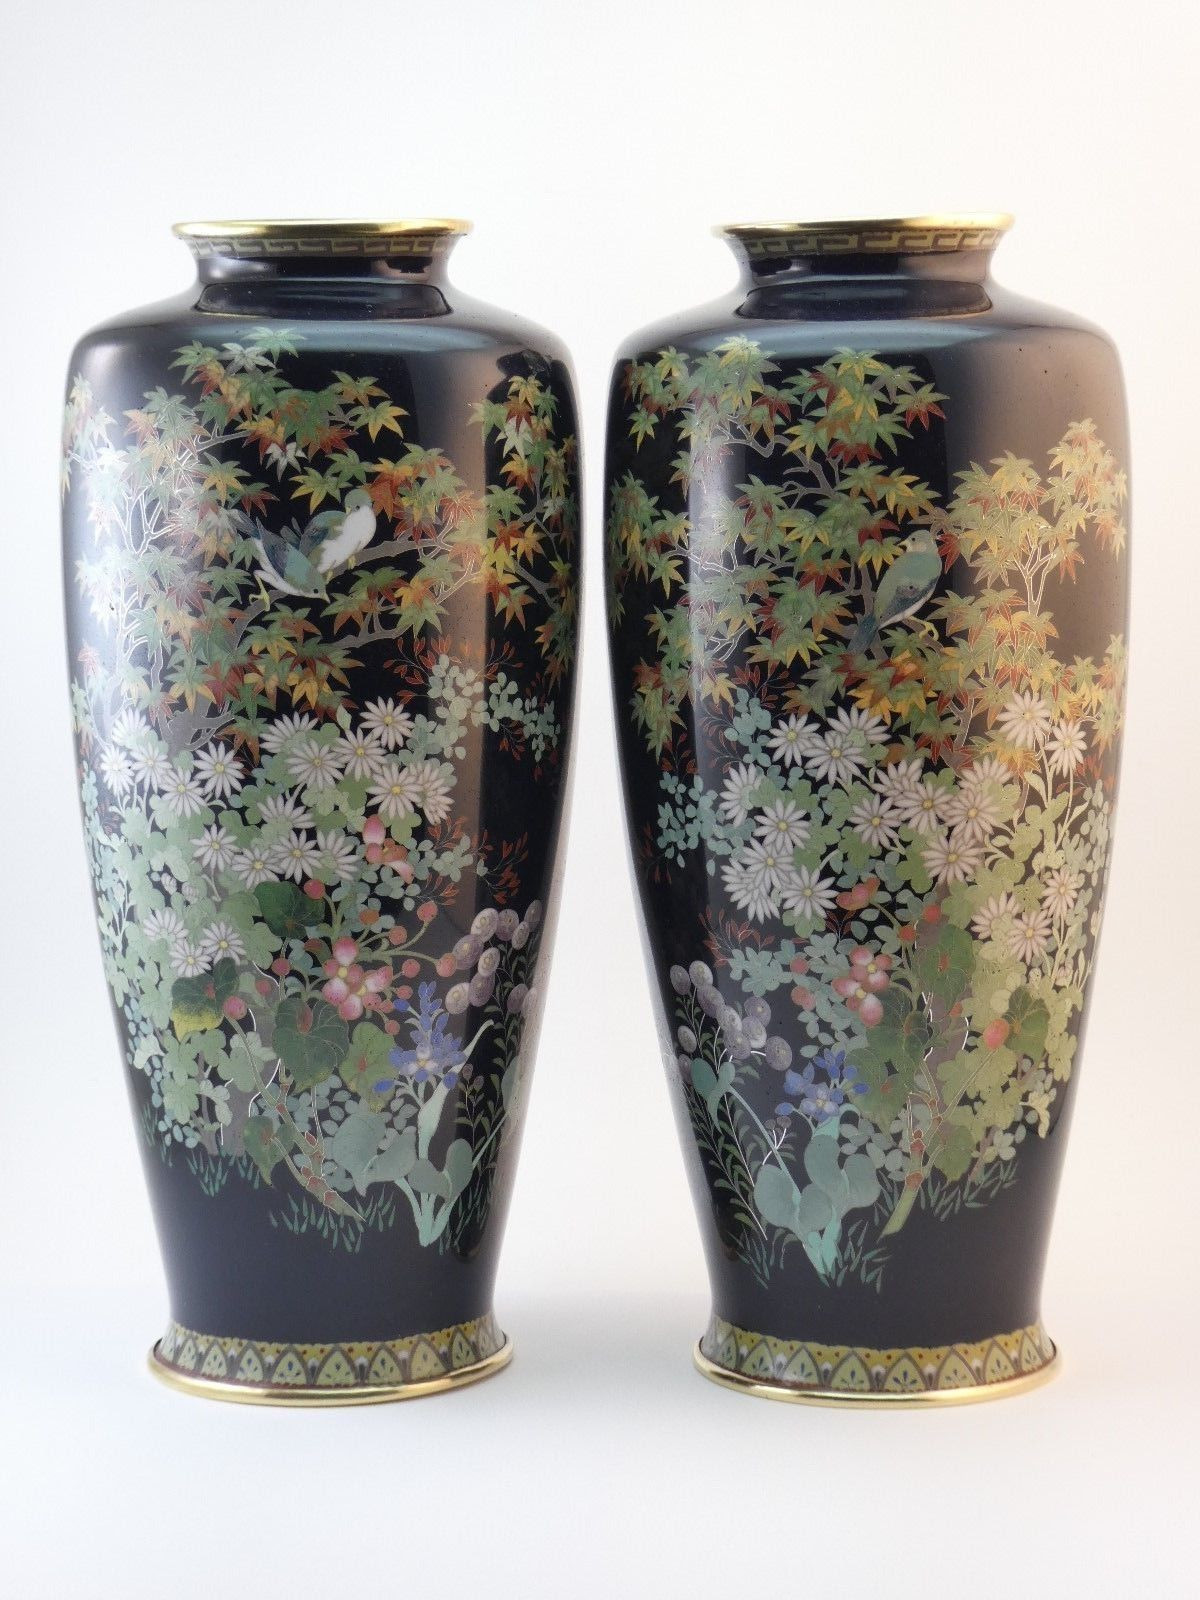 cloisonne vase value of hayashi hachizaemon antique meiji period pair of silver wire intended for hayashi hachizaemon antique meiji period pair of silver wire japanese cloisonna vases